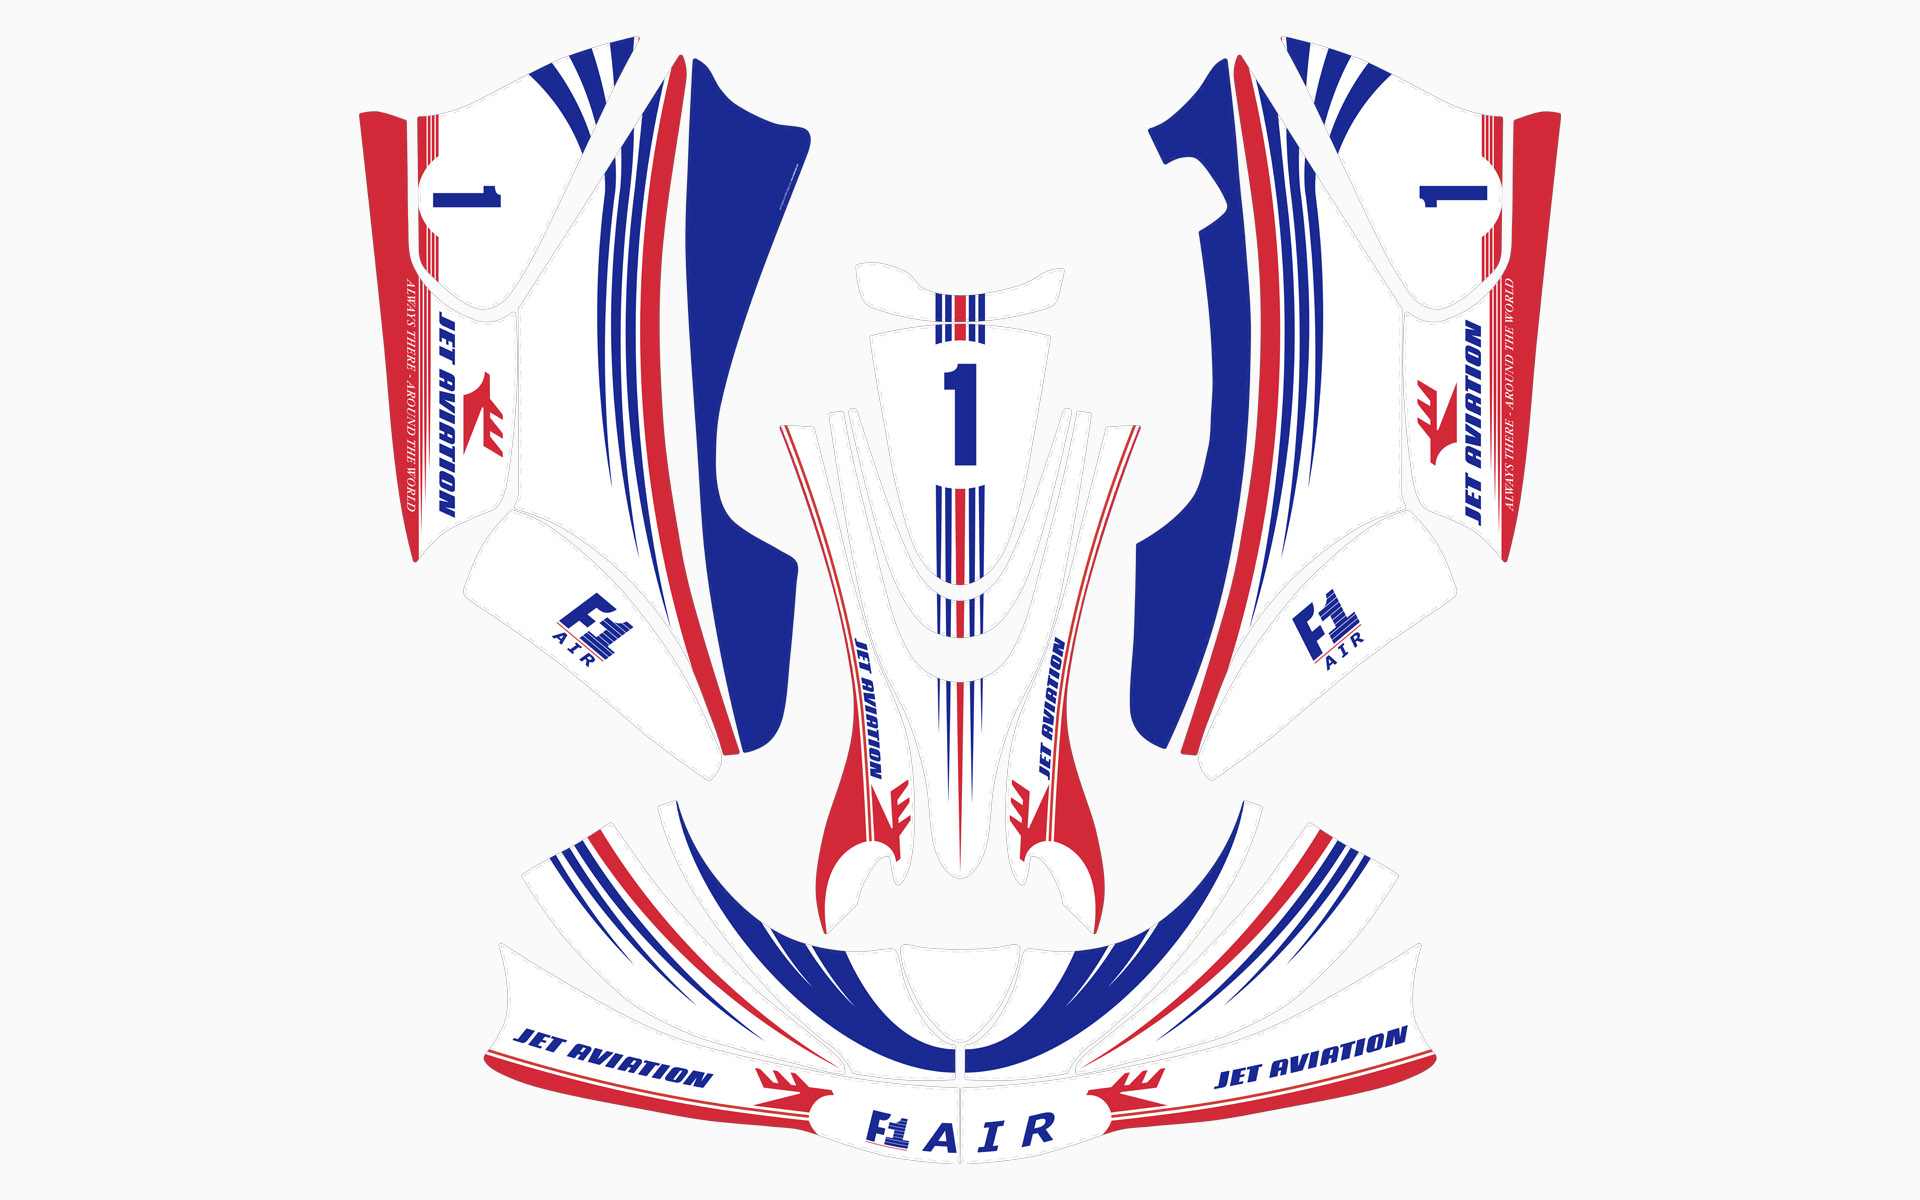 F1-Air Rotax Kart Livery Decal Kit